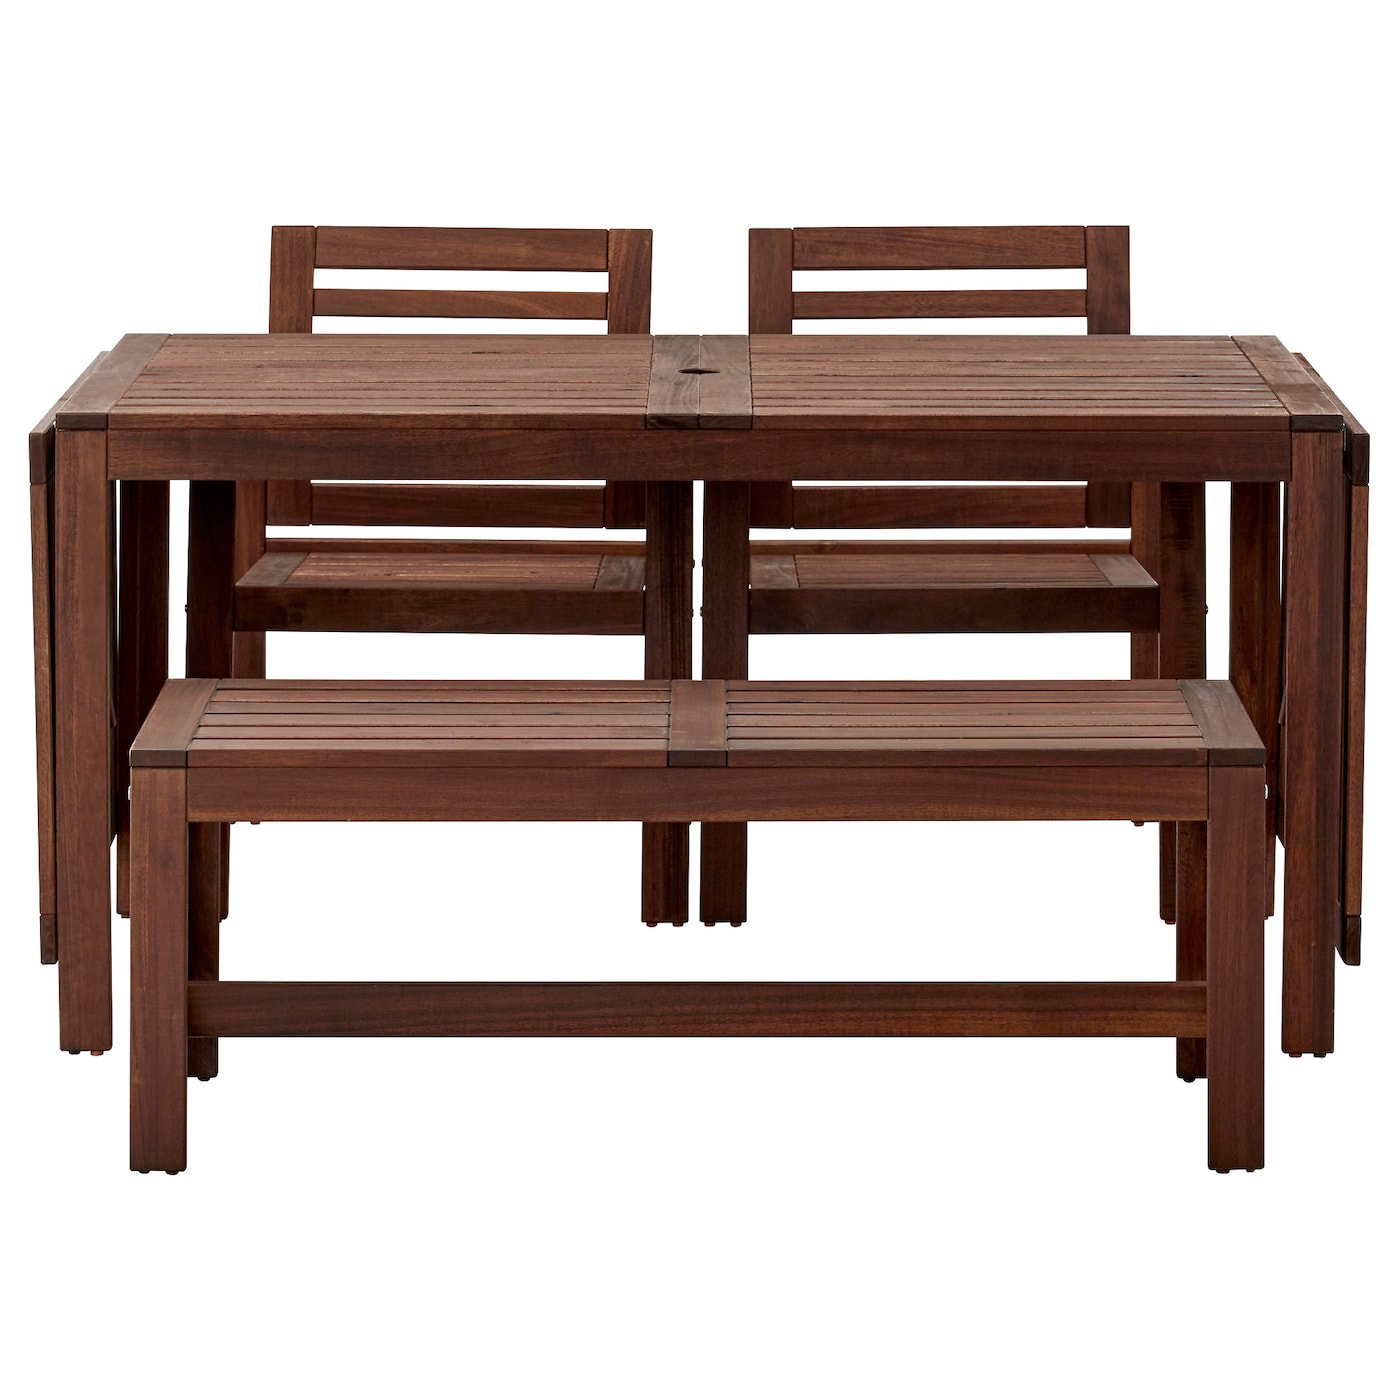 Garden tables chairs garden furniture sets ikea for Patio table with bench